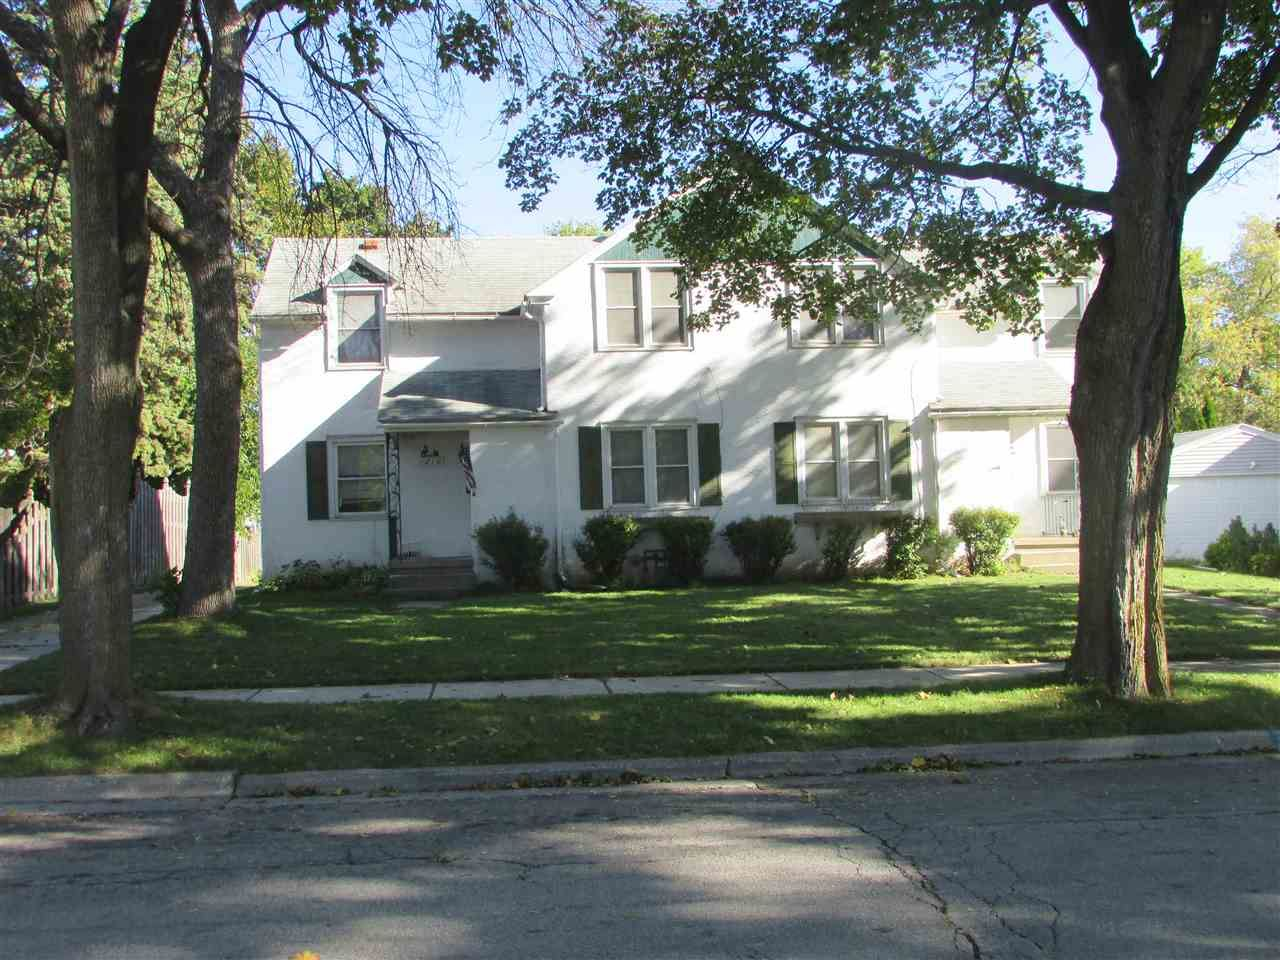 1208 OREGON Street, Green Bay, WI 54303 - MLS#: 50230912